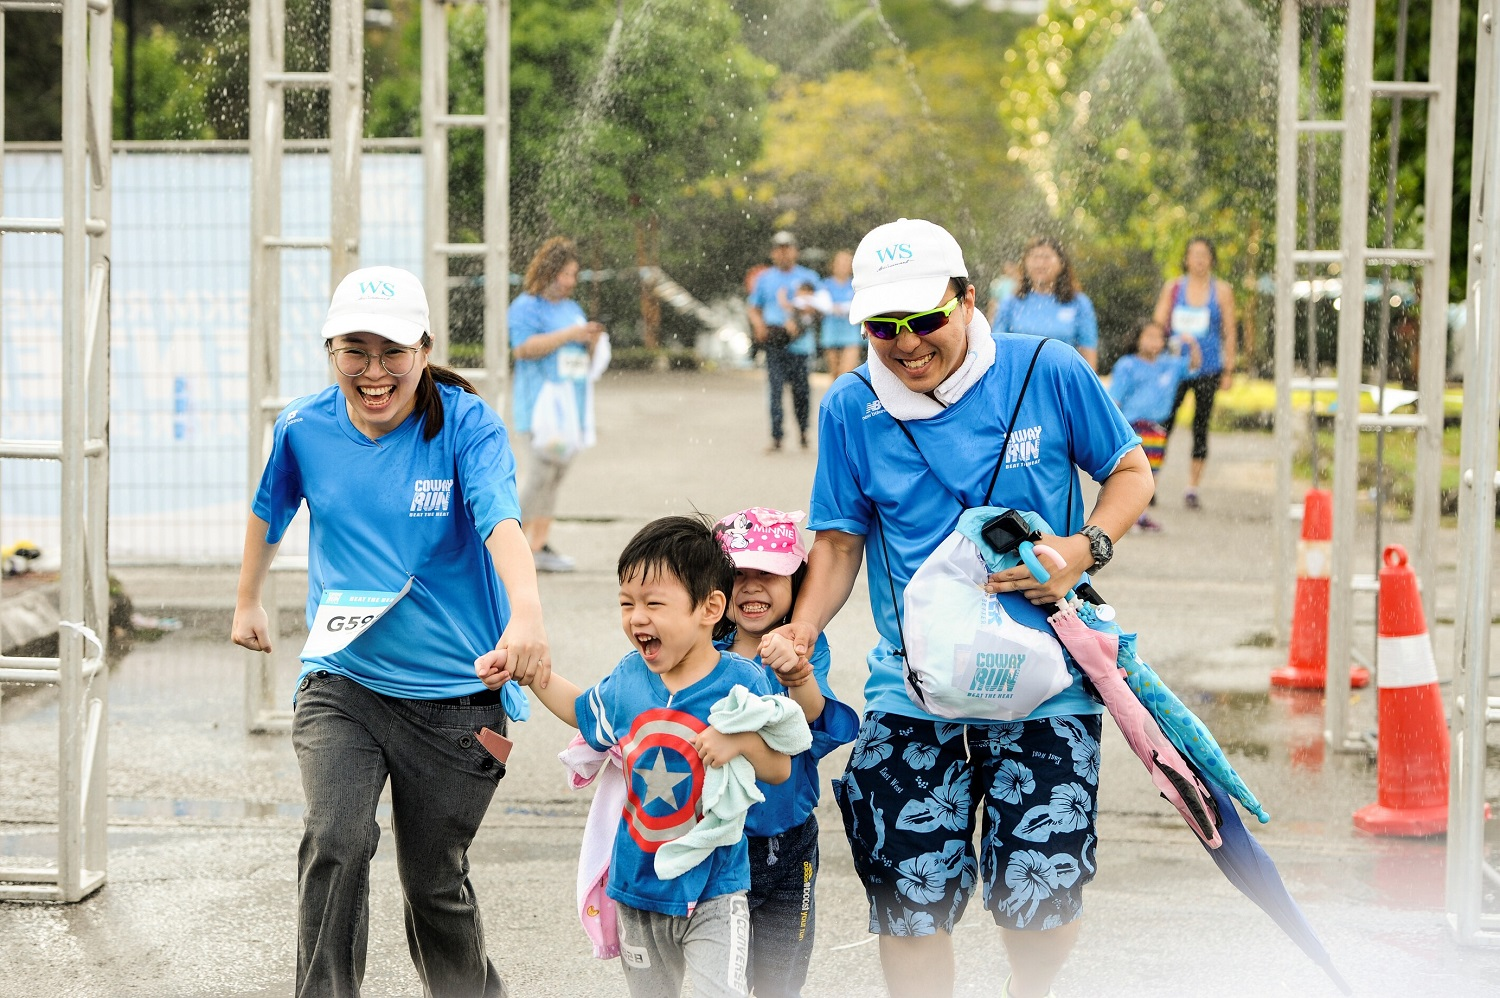 Get Fit With The Fun Coway Run 2020